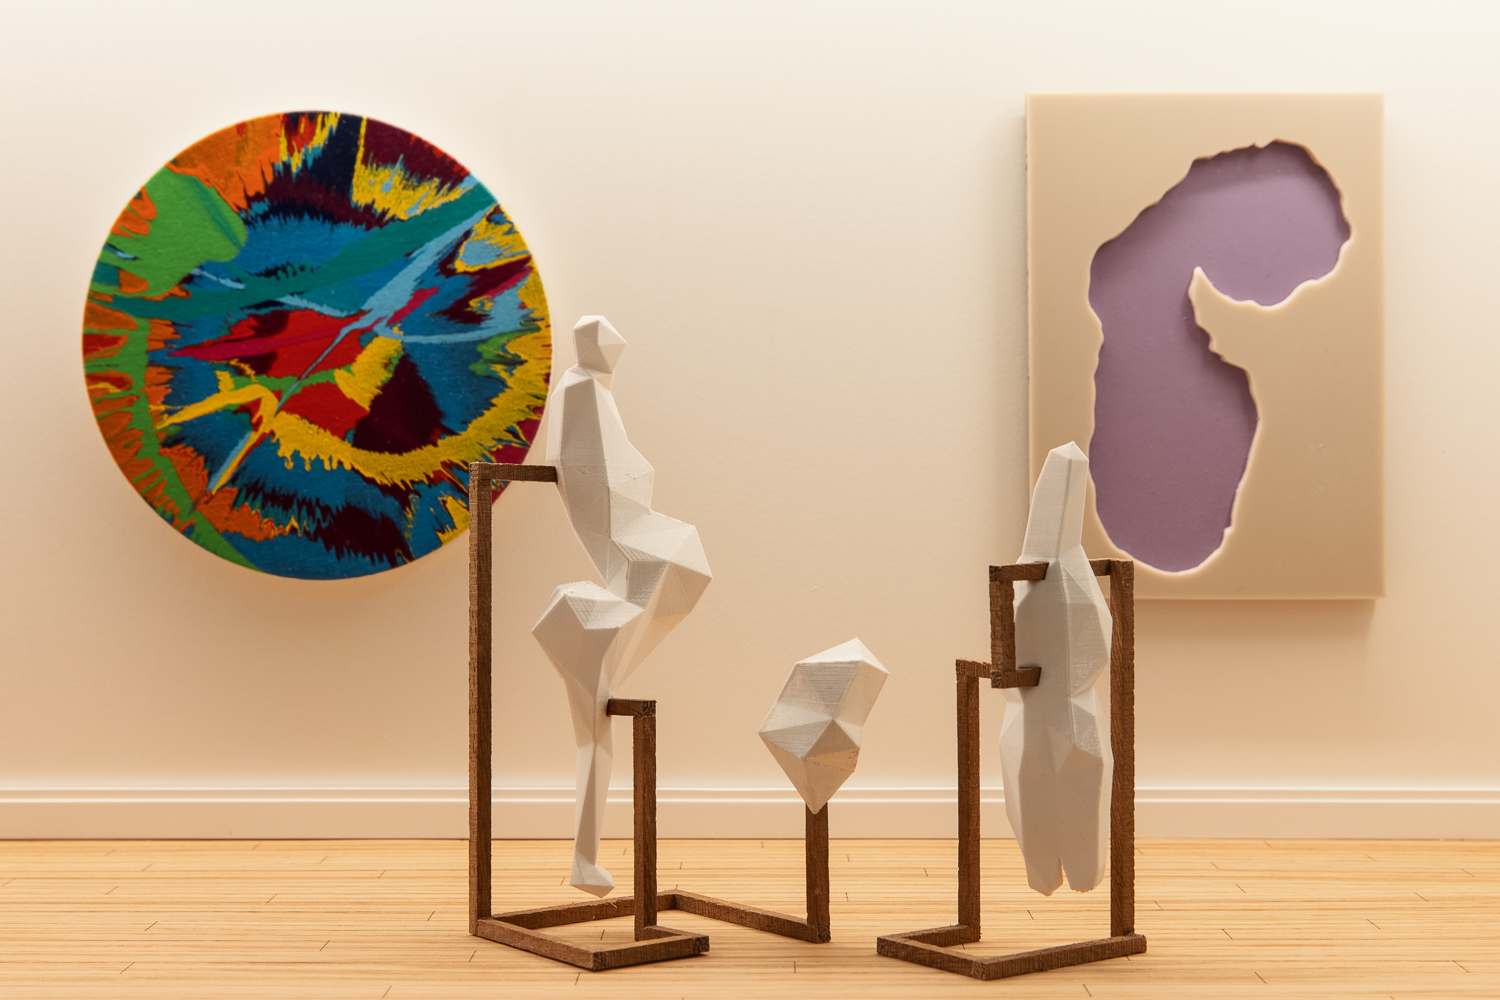 Three works of art in a gallery with white walls and wooden flooring. On the back wall to the left is a painting on a round canvas decorated with splotches of paint applied when the canvas was spinning to create an explosive effect. On the right is work showing a lilac land mass sunk in relief in a white canvas. In front of both is an abstract sculpture of white abstract blocks balanced on wooden stands.